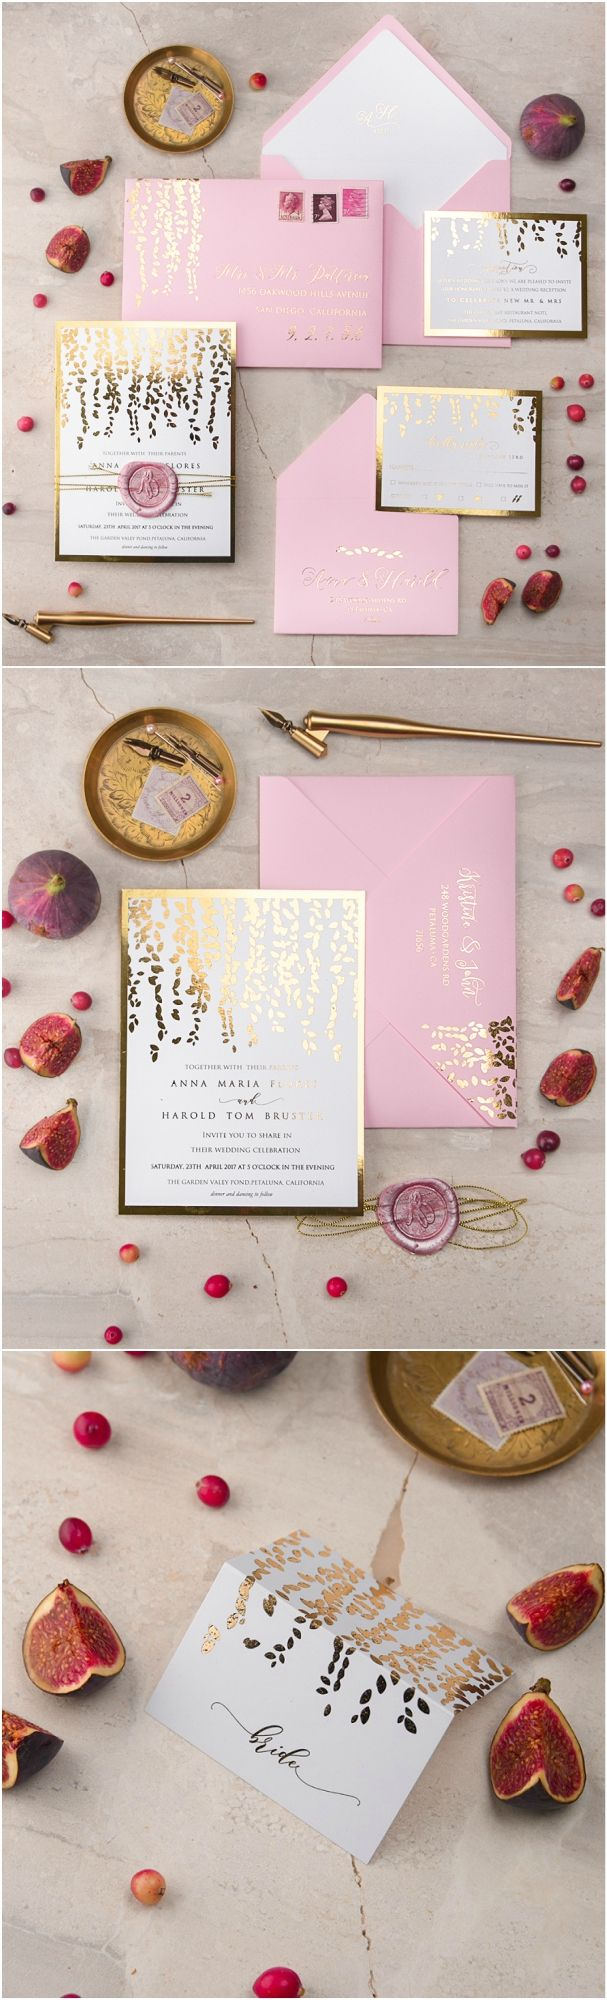 Pink & Gold Wedding Stationery - Gold Foiled, wax stamped elegant wedding invitation and place card #weddingideas #wedding #gold #pink #elegant #romantic